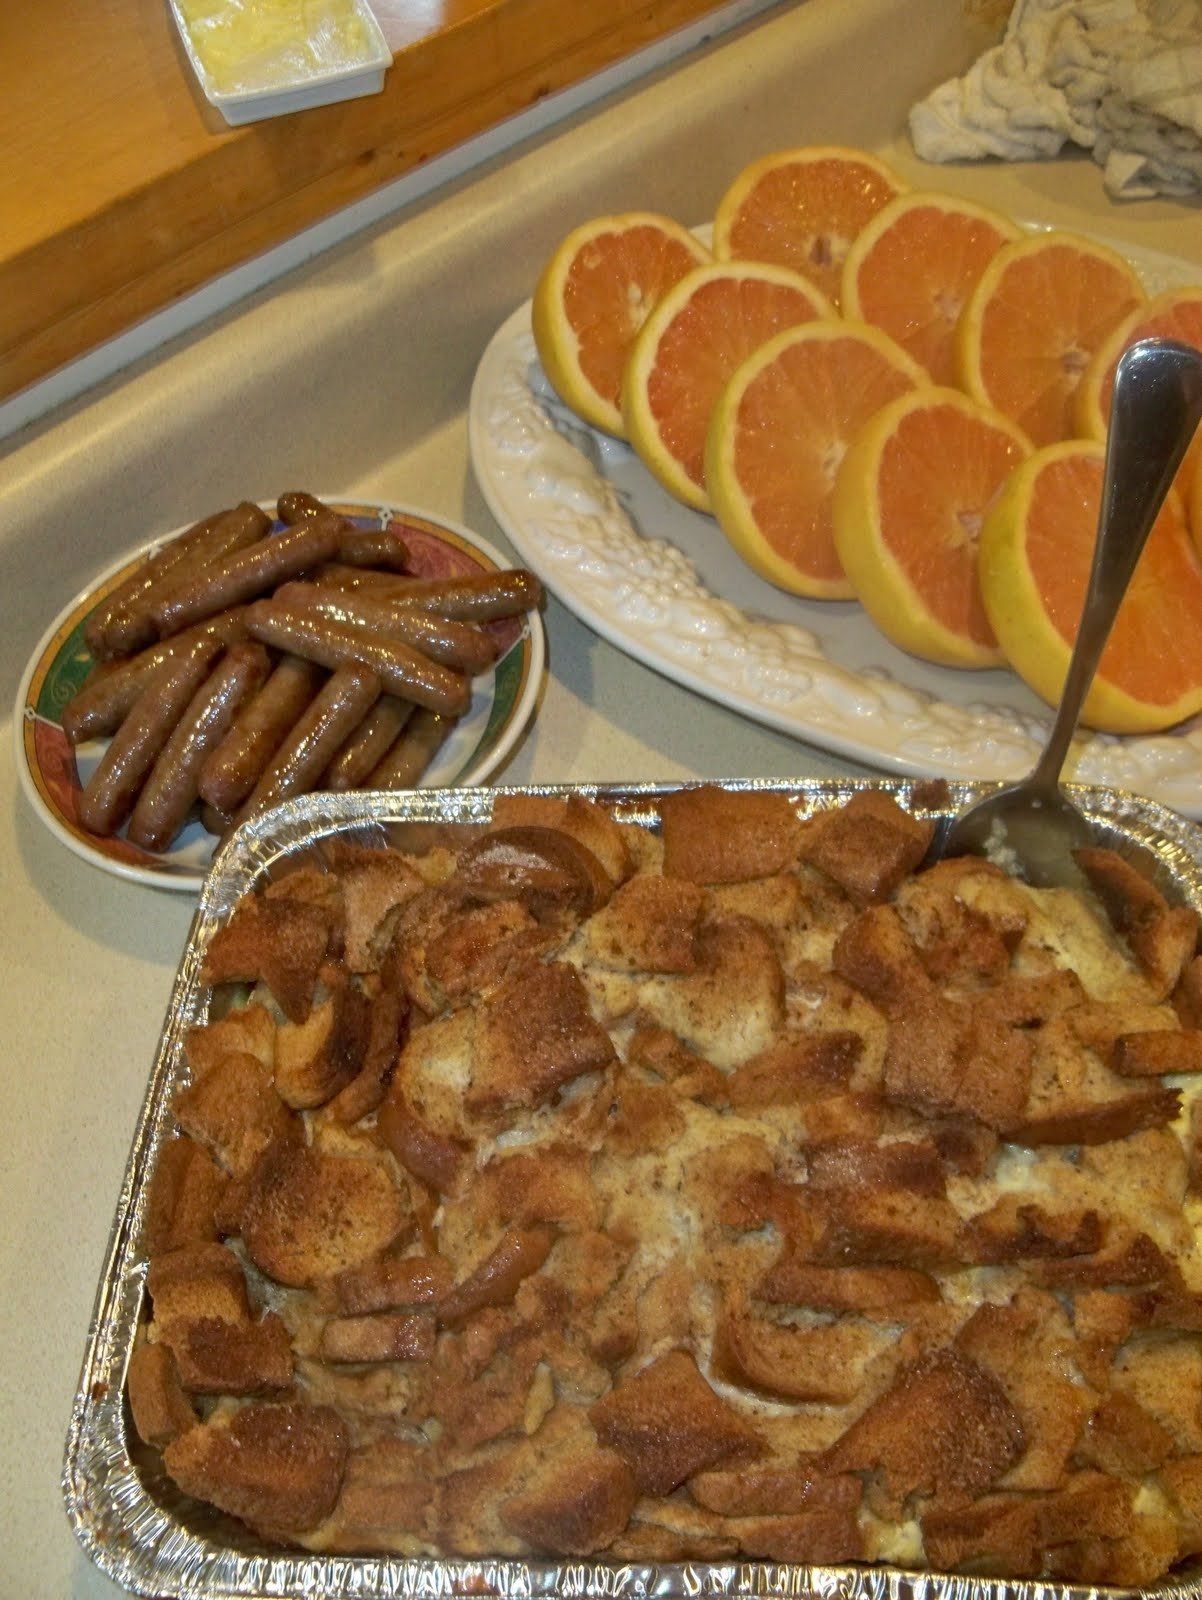 10 Ideal Breakfast Ideas For Large Groups all things gale breakfasts in bulk easy breakfasts to feed a 1 2020